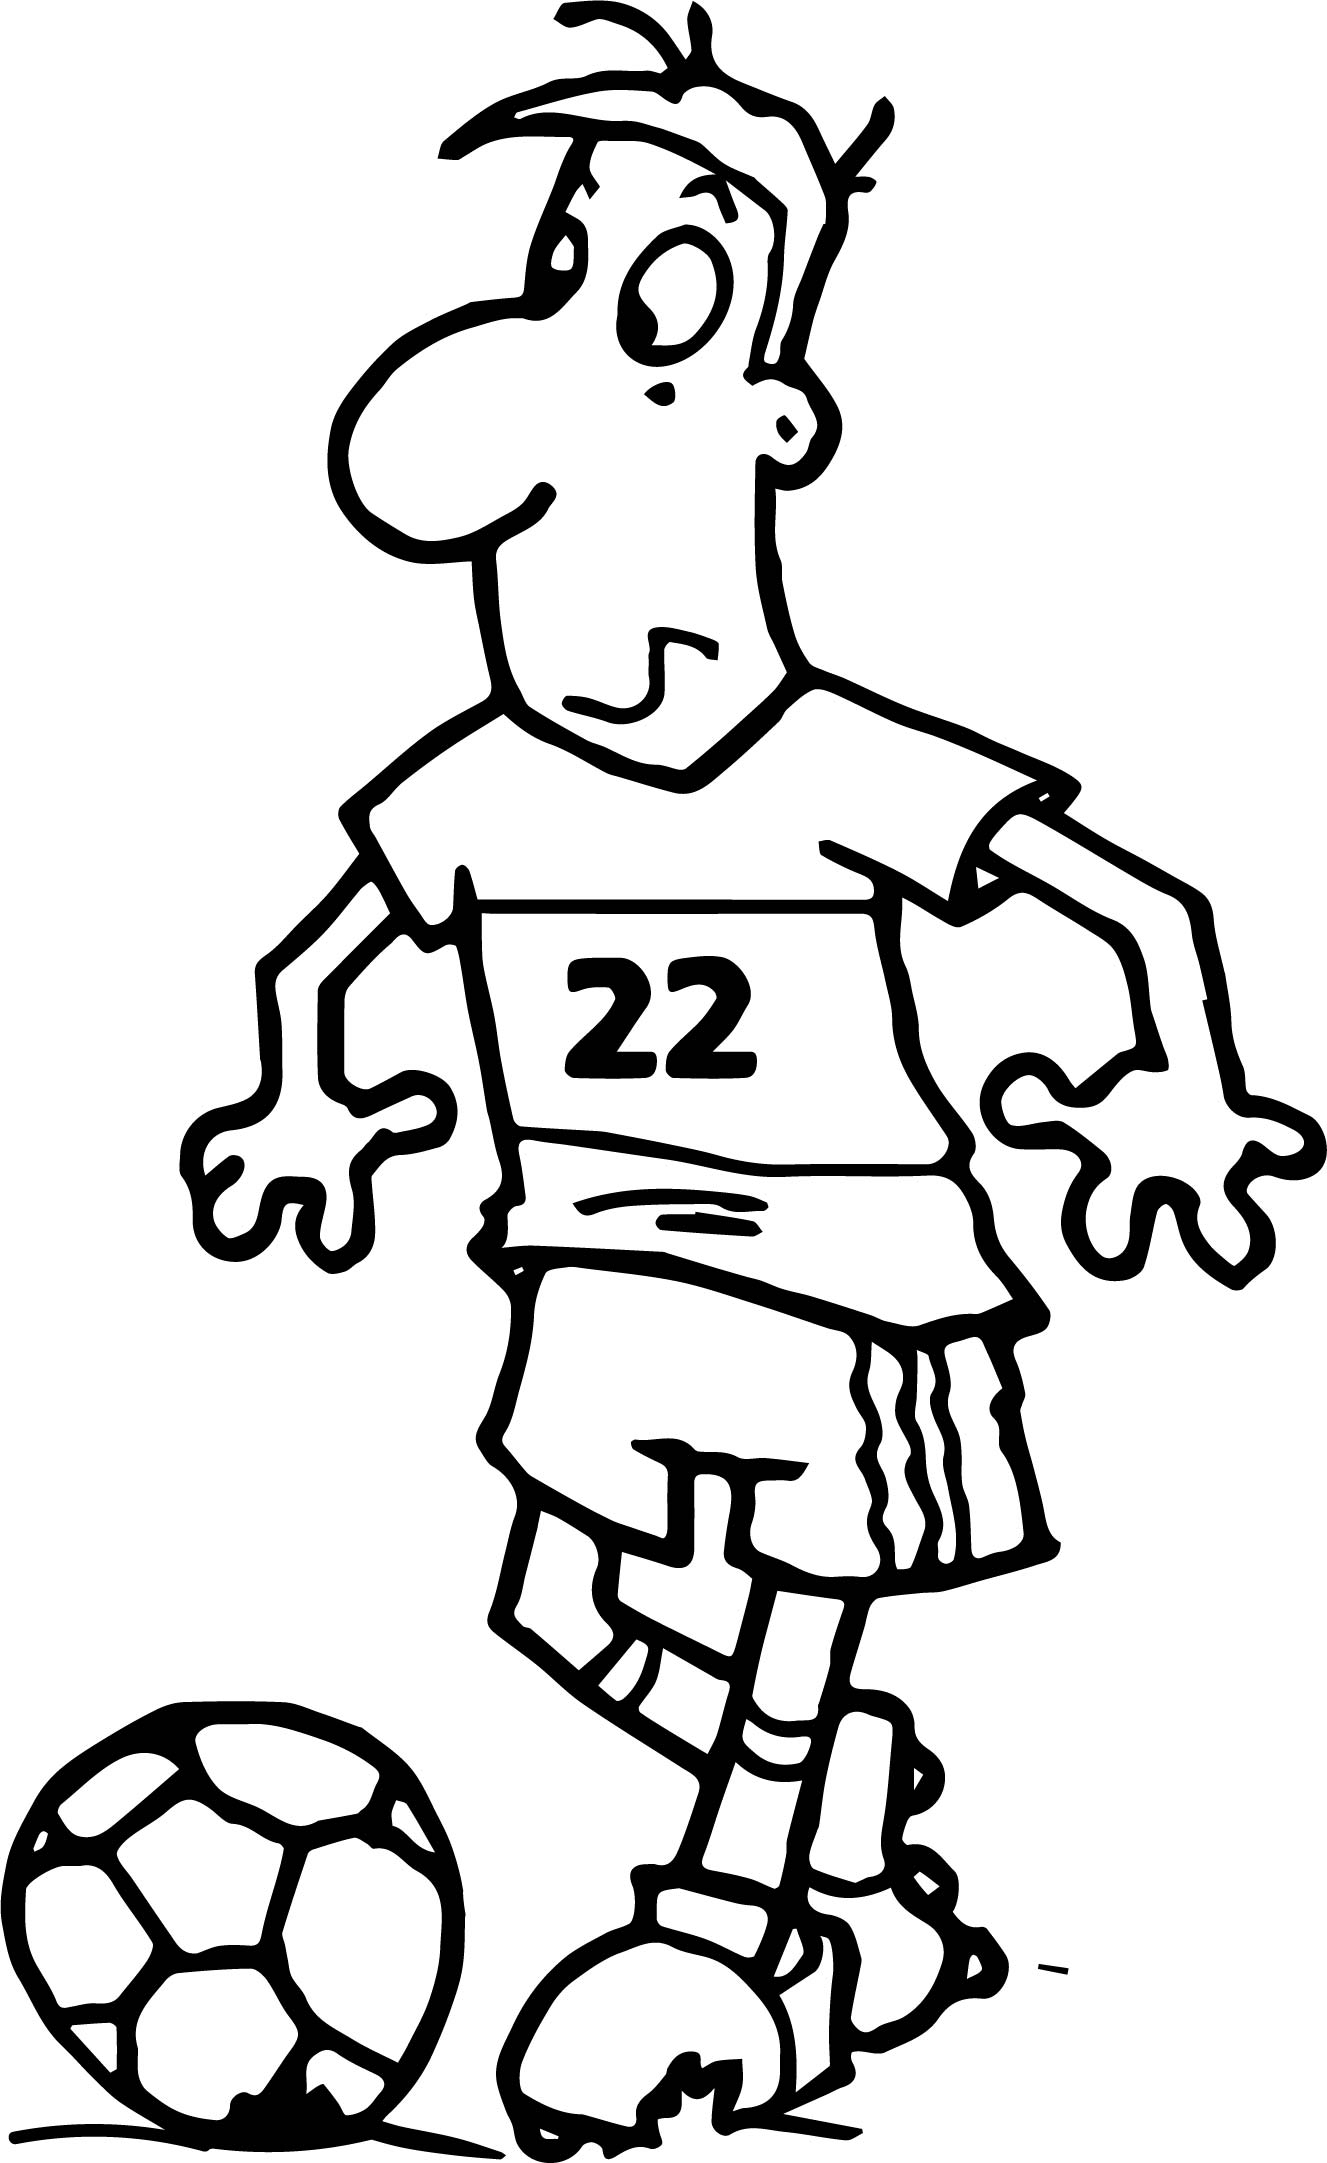 football coloring pages - soccer player cartoon free playing football coloring page